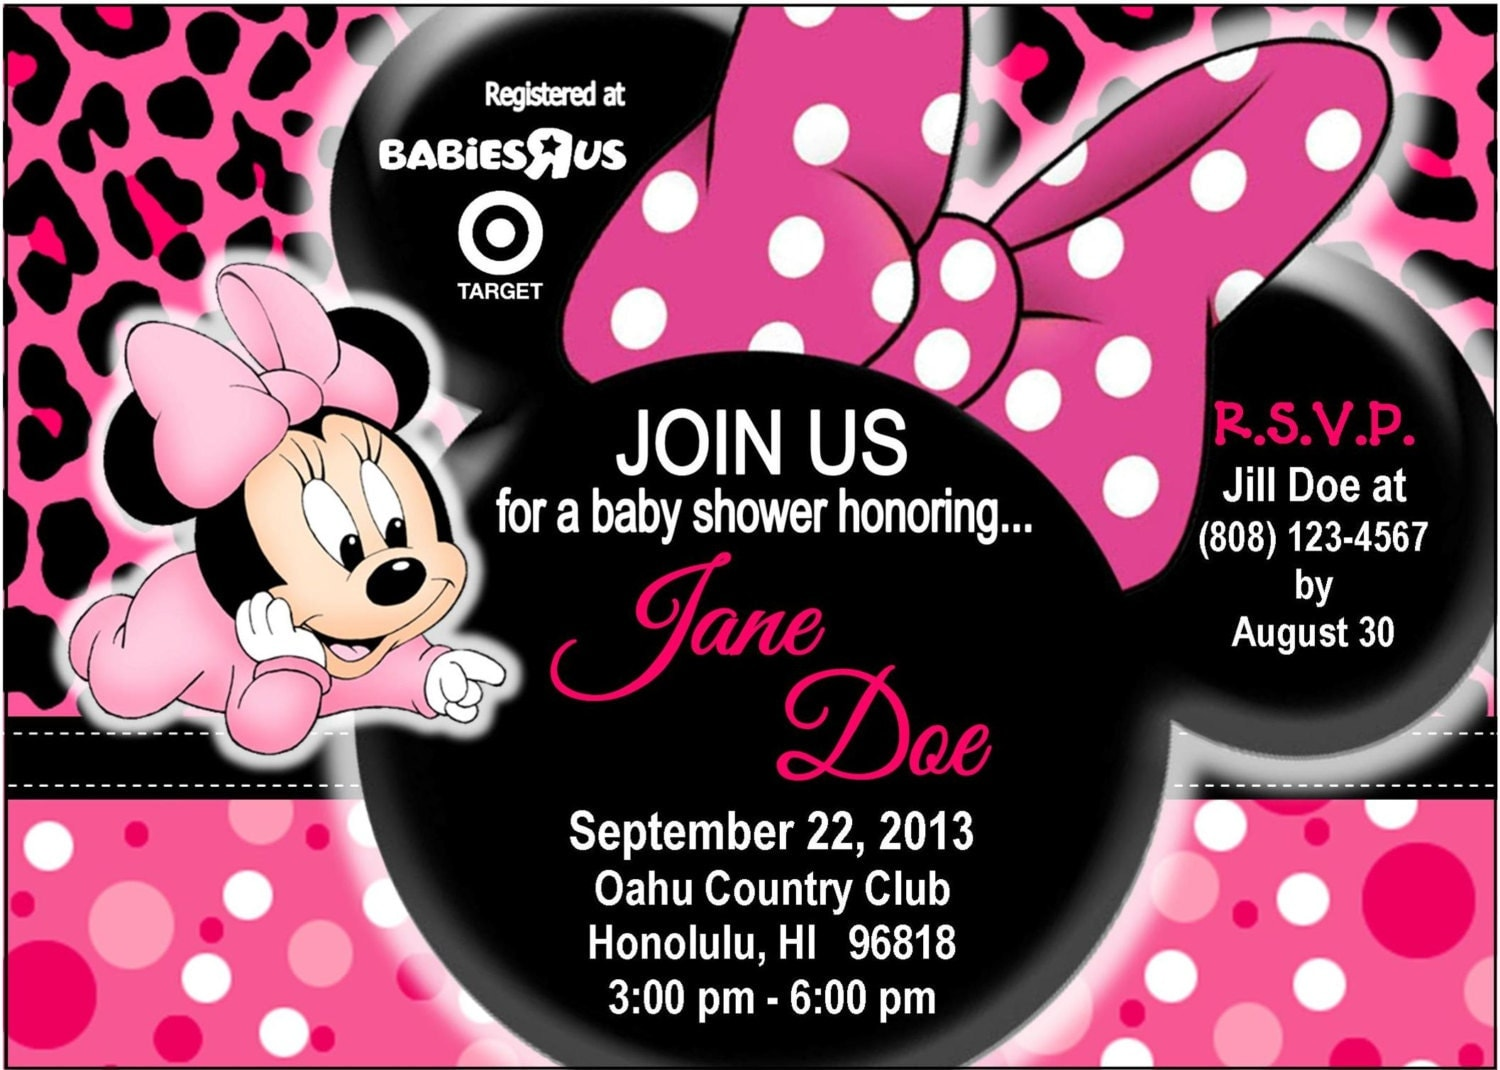 Baby Shower Invite Wording is beautiful invitations layout